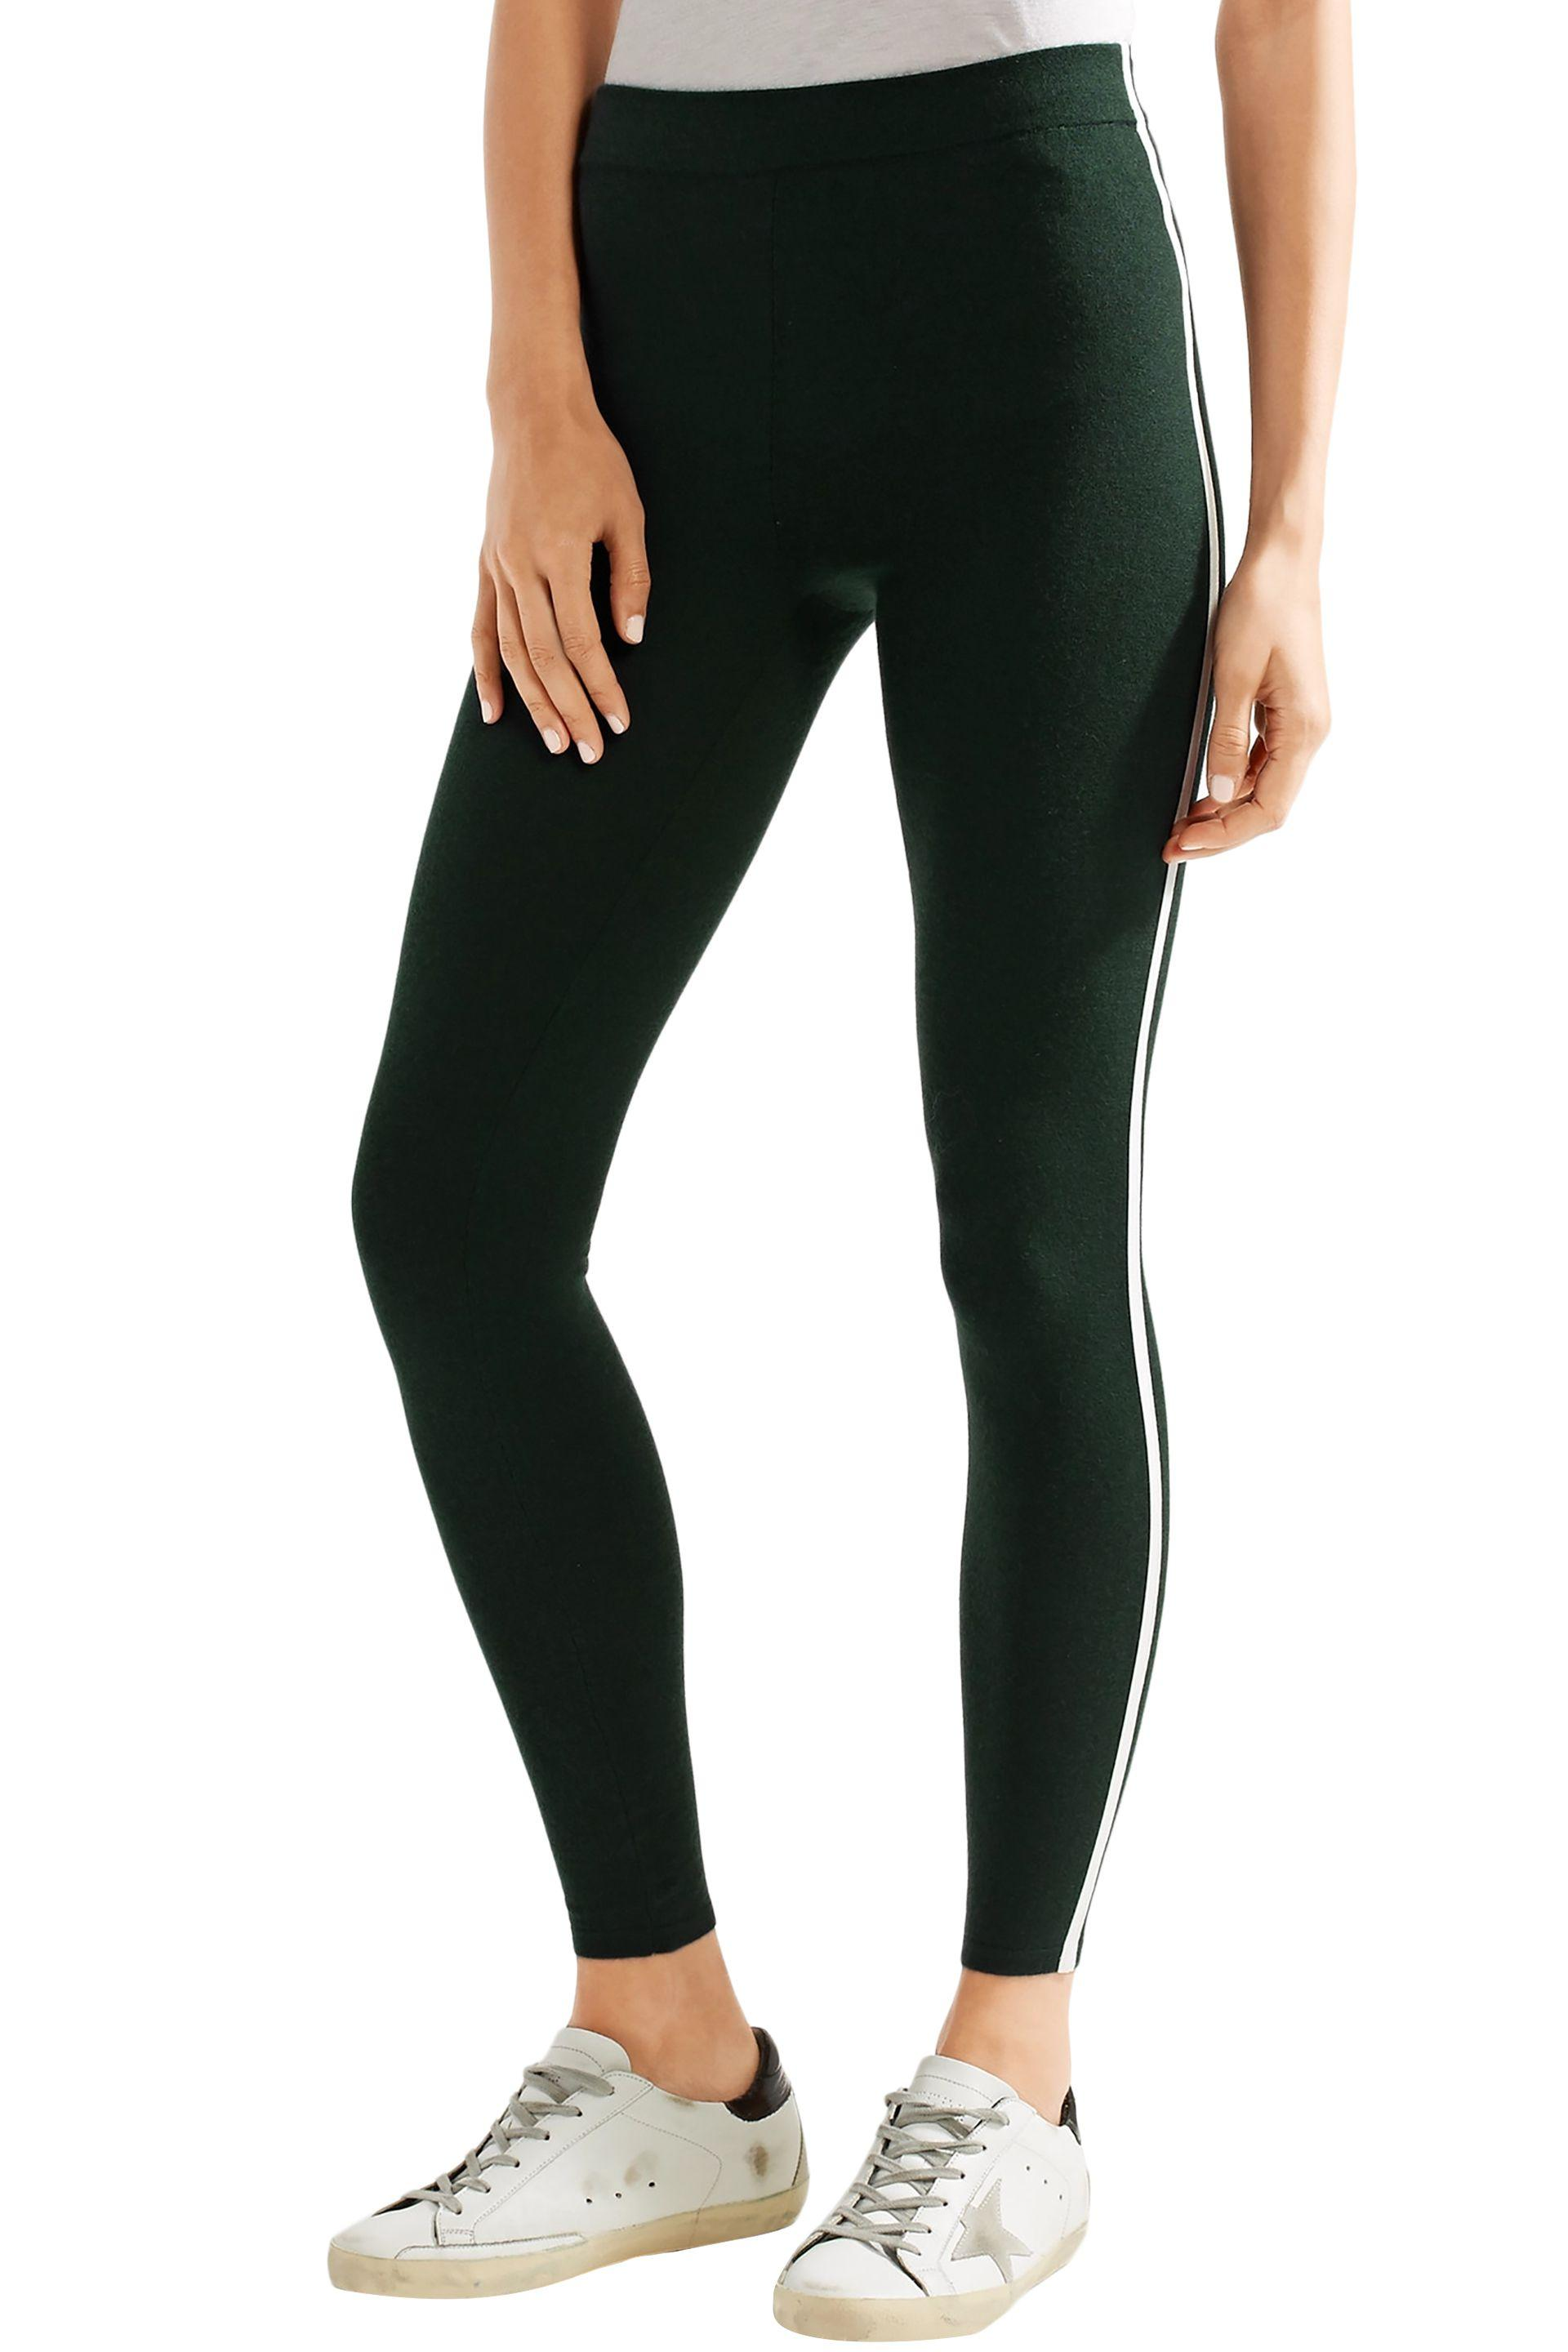 2e86035d46b1a2 James Perse - Black Cashmere-blend Leggings Dark Green - Lyst. View  fullscreen